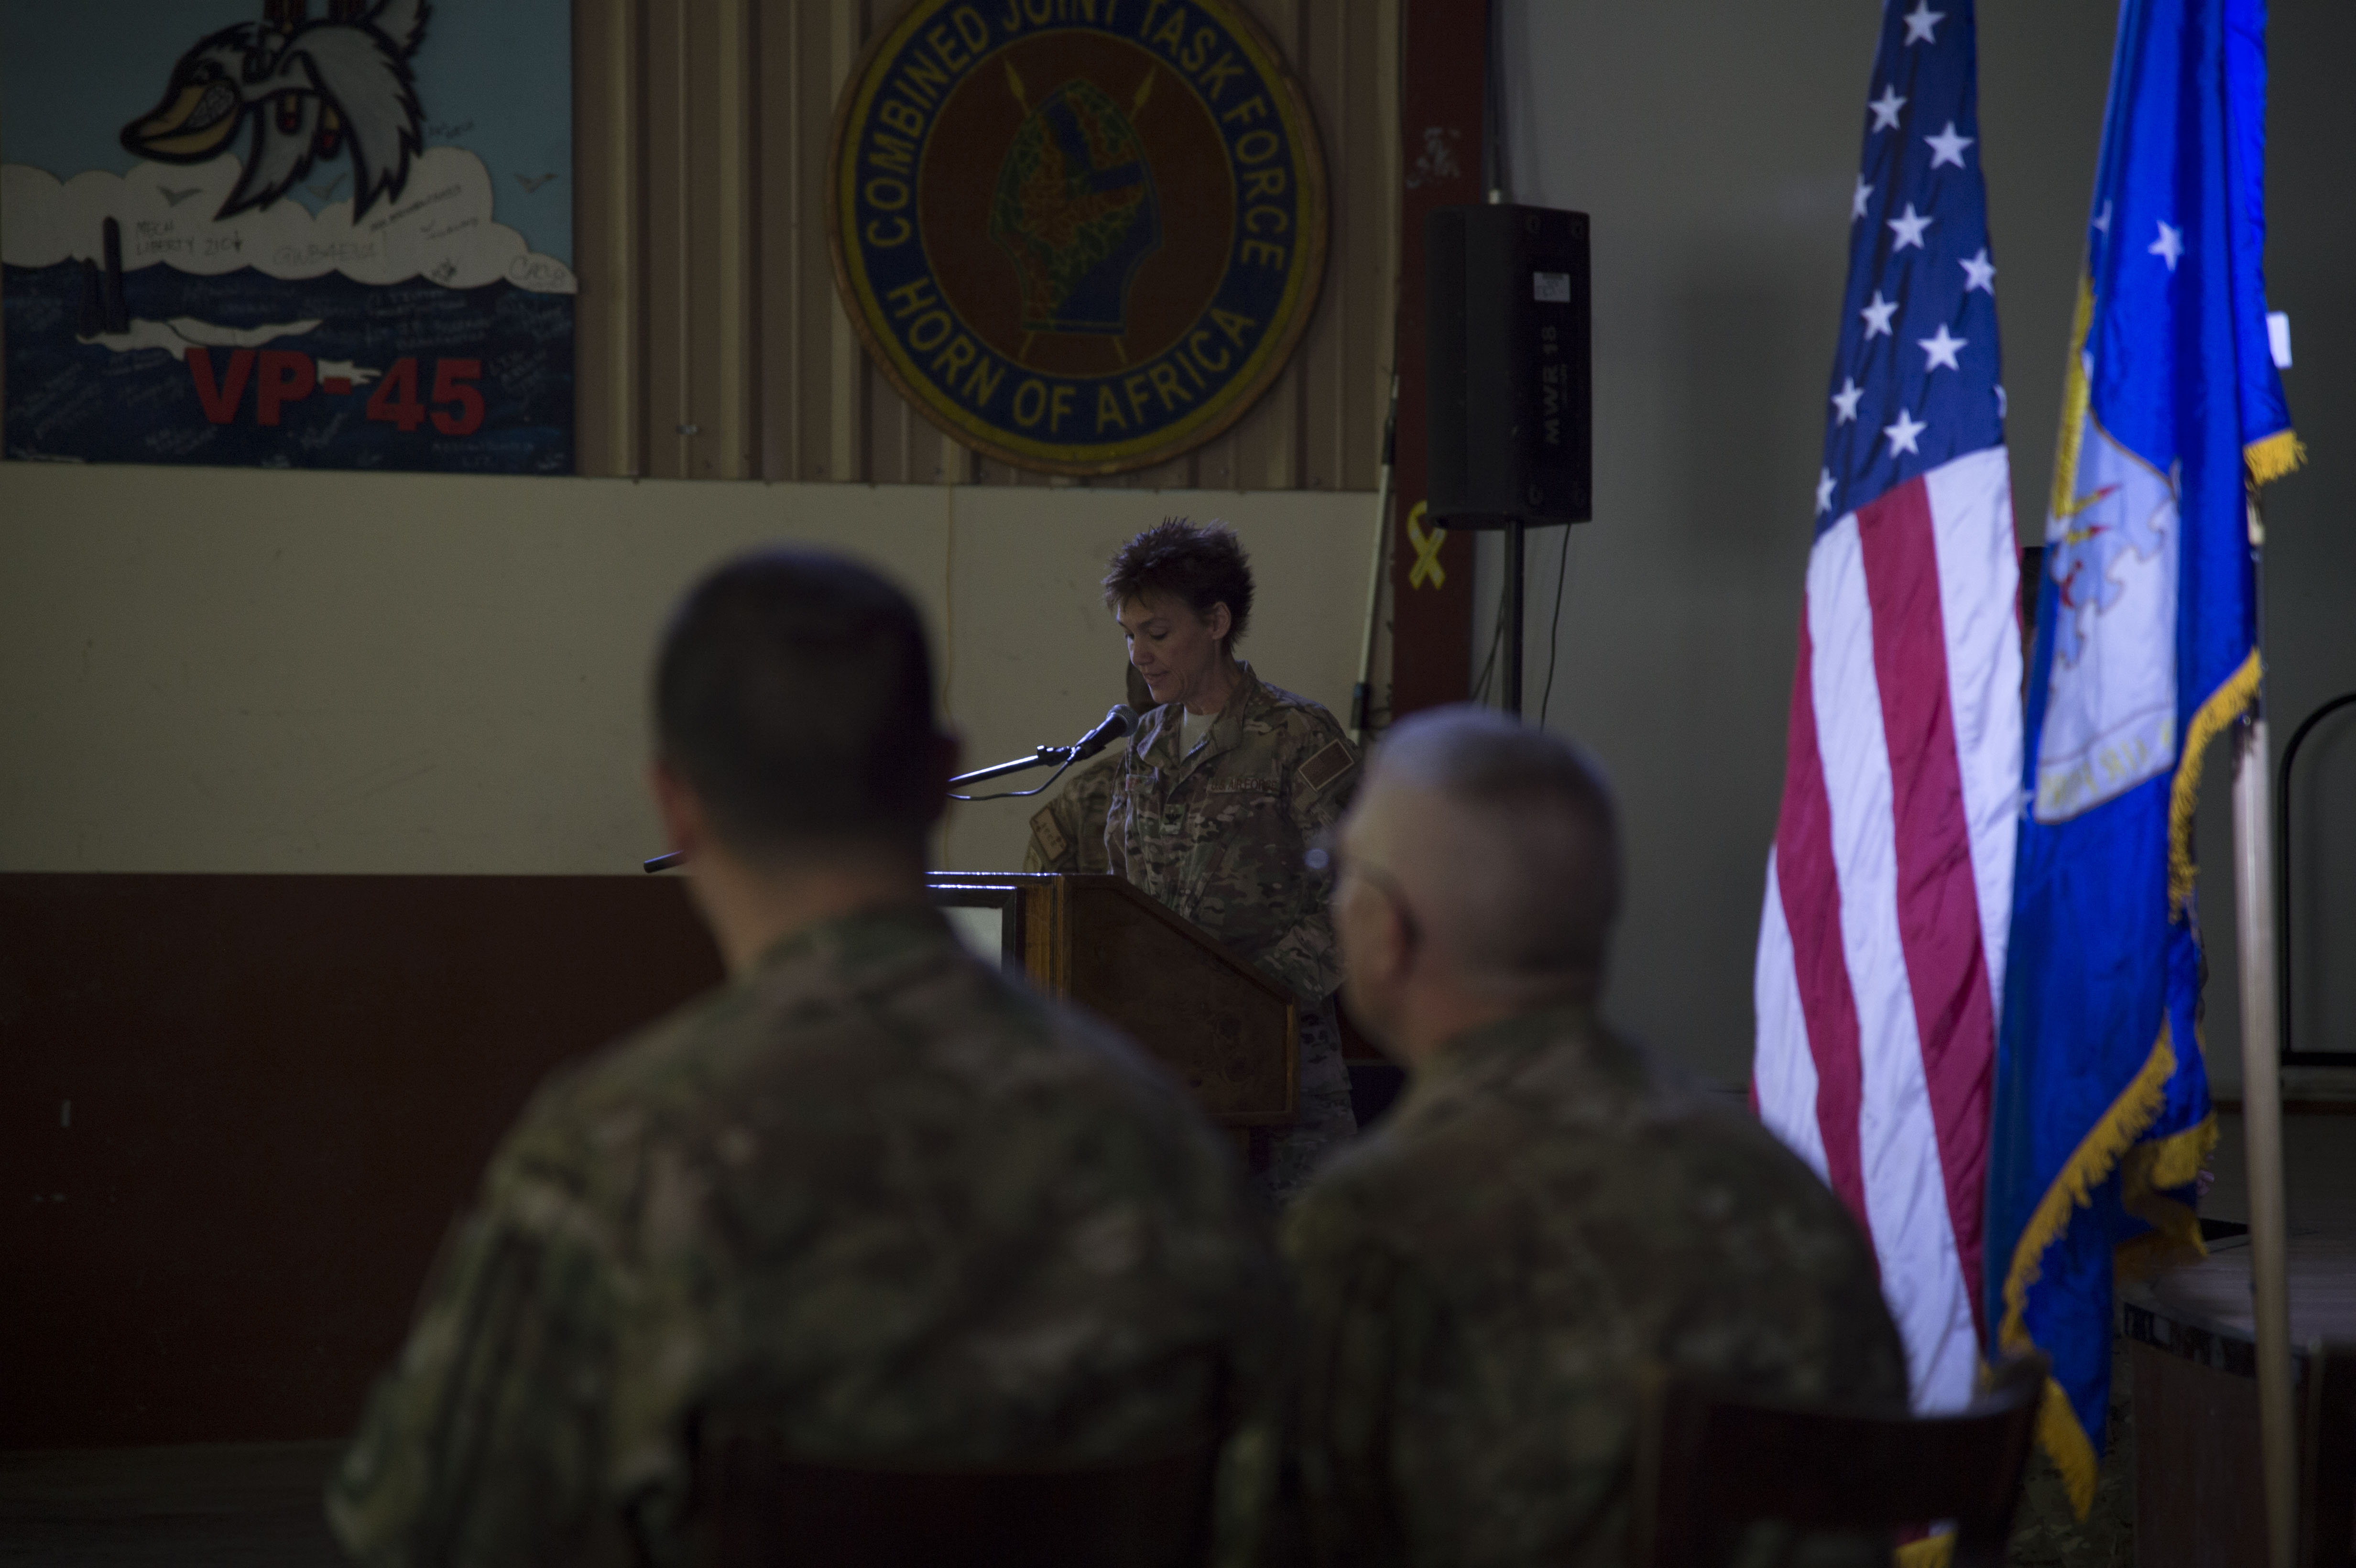 U.S. Air Force Col. Andra Kniep, 435th Air Expeditionary Wing commander and presiding officer, speaks about the achievements of U.S. Air Force Col. Daniel Duffy, 449th Air Expeditionary Group outgoing commander, during the 449th AEG Change of Command ceremony June 6, 2016, at Camp Lemonnier, Djibouti. Assigned to U.S. Forces Africa, The 449th AEG conducts personnel recovery and other operations in support of activities to enable U.S. Air Forces Africa and Combined Joint Task Force-Horn of Africa. (U.S. Air Force photo by Staff Sgt. Eric Summers Jr.)